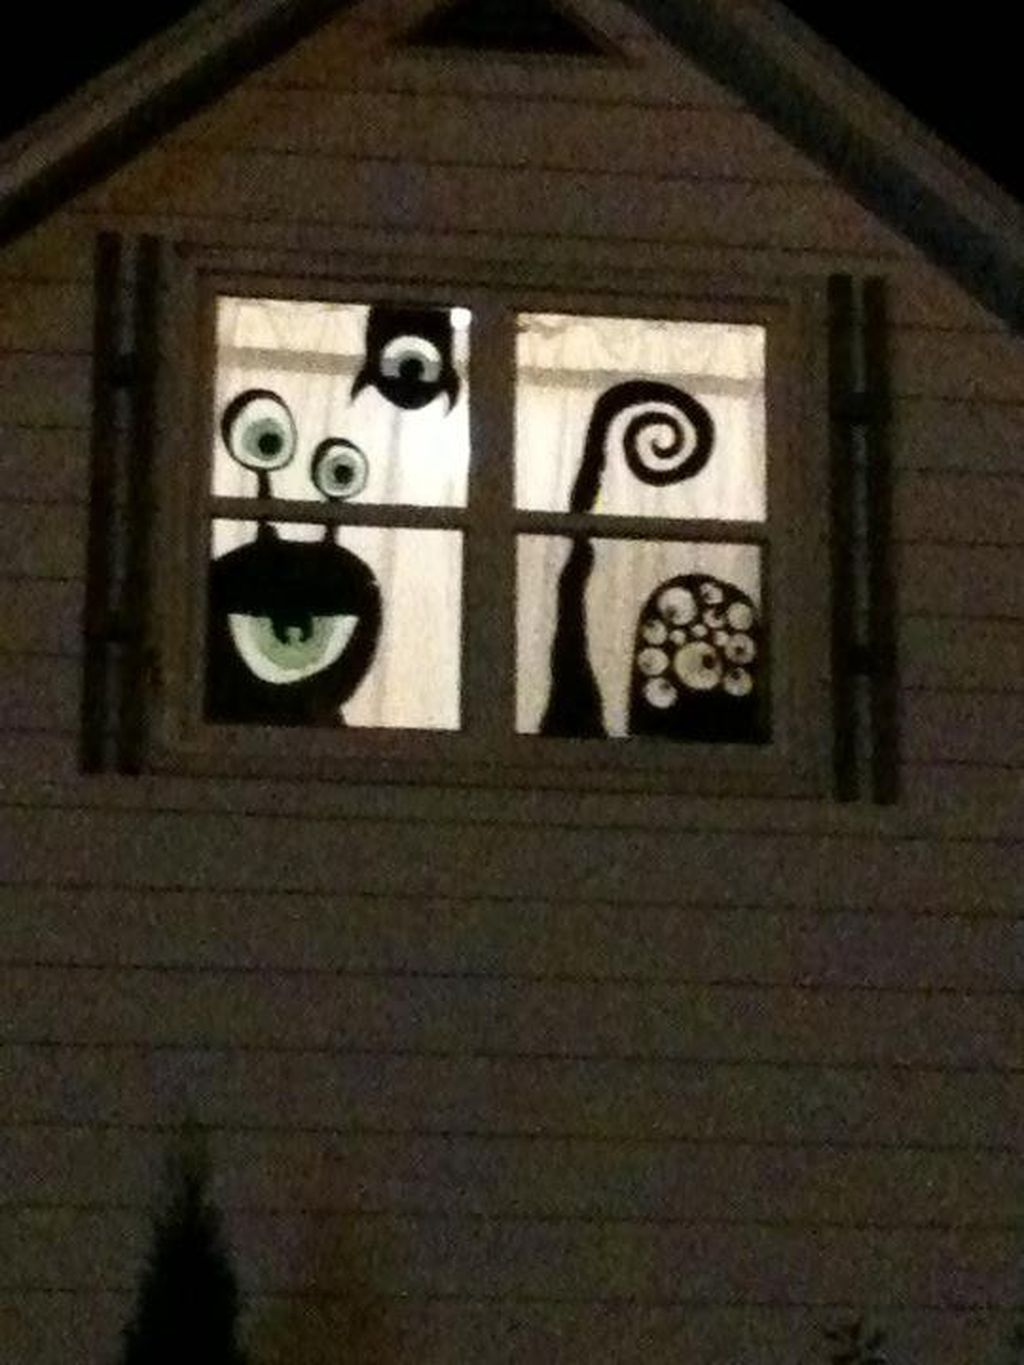 Scary But Creative DIY Halloween Window Decorations Ideas You Should Try 12